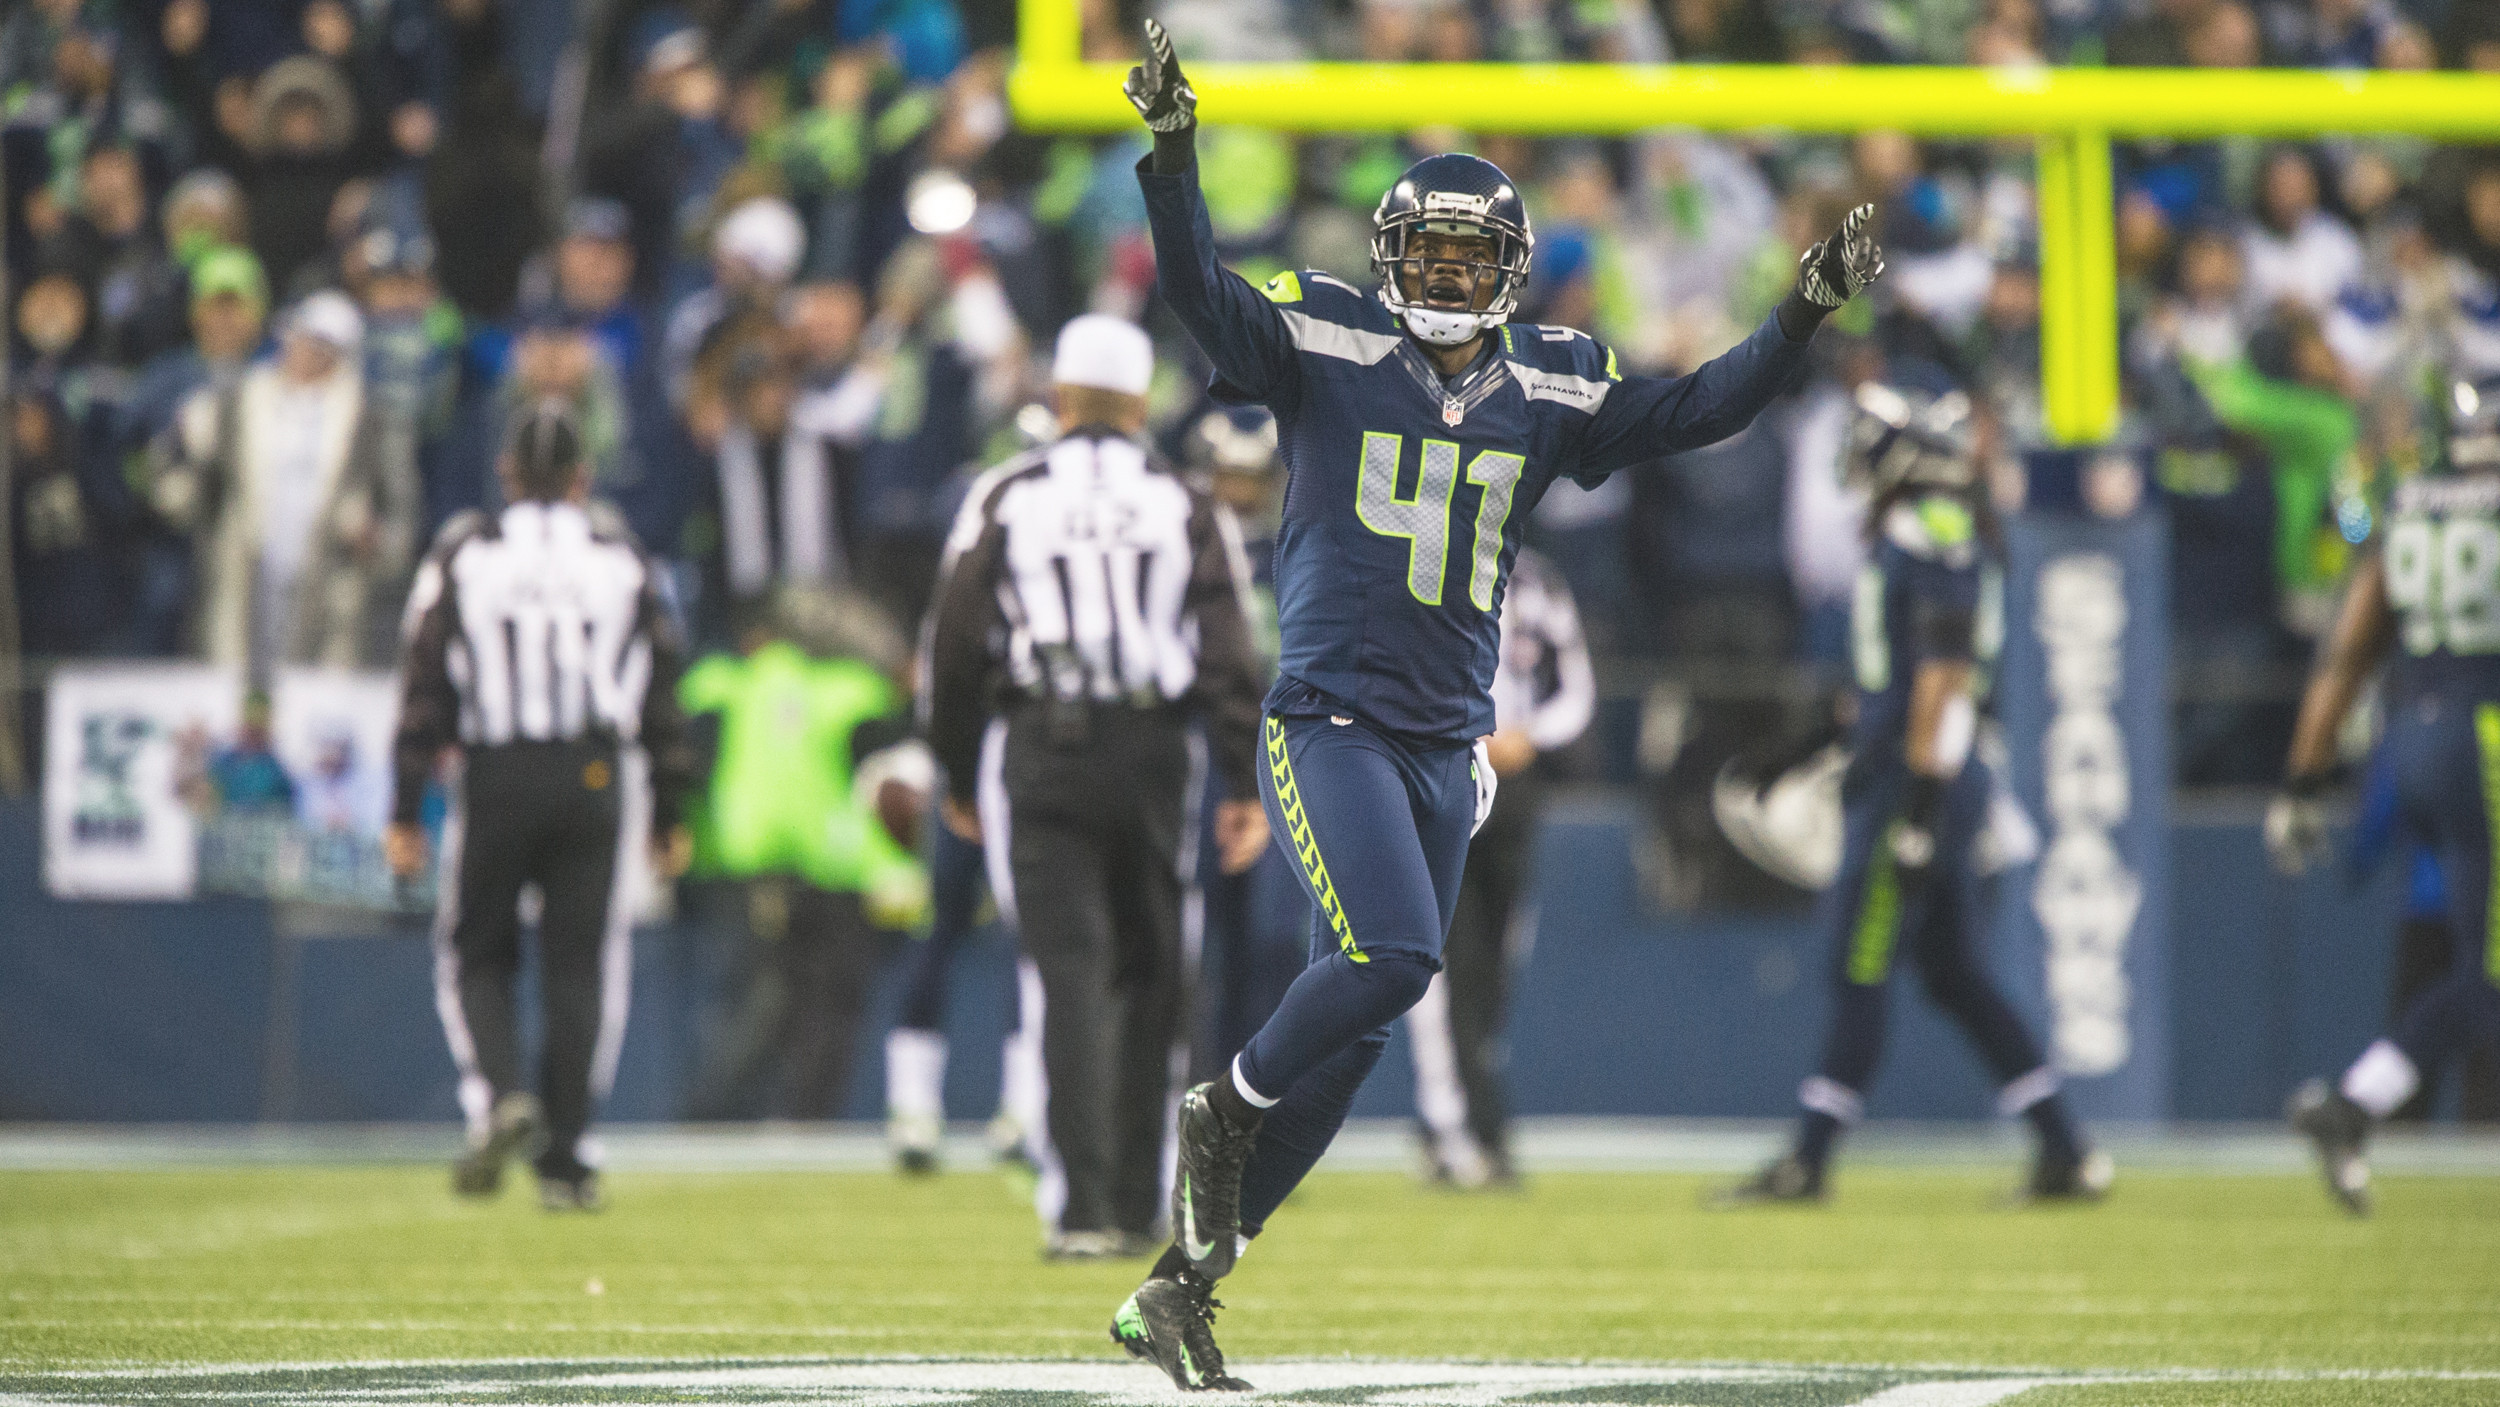 Maxwell to Start in Super Bowl on Sunday